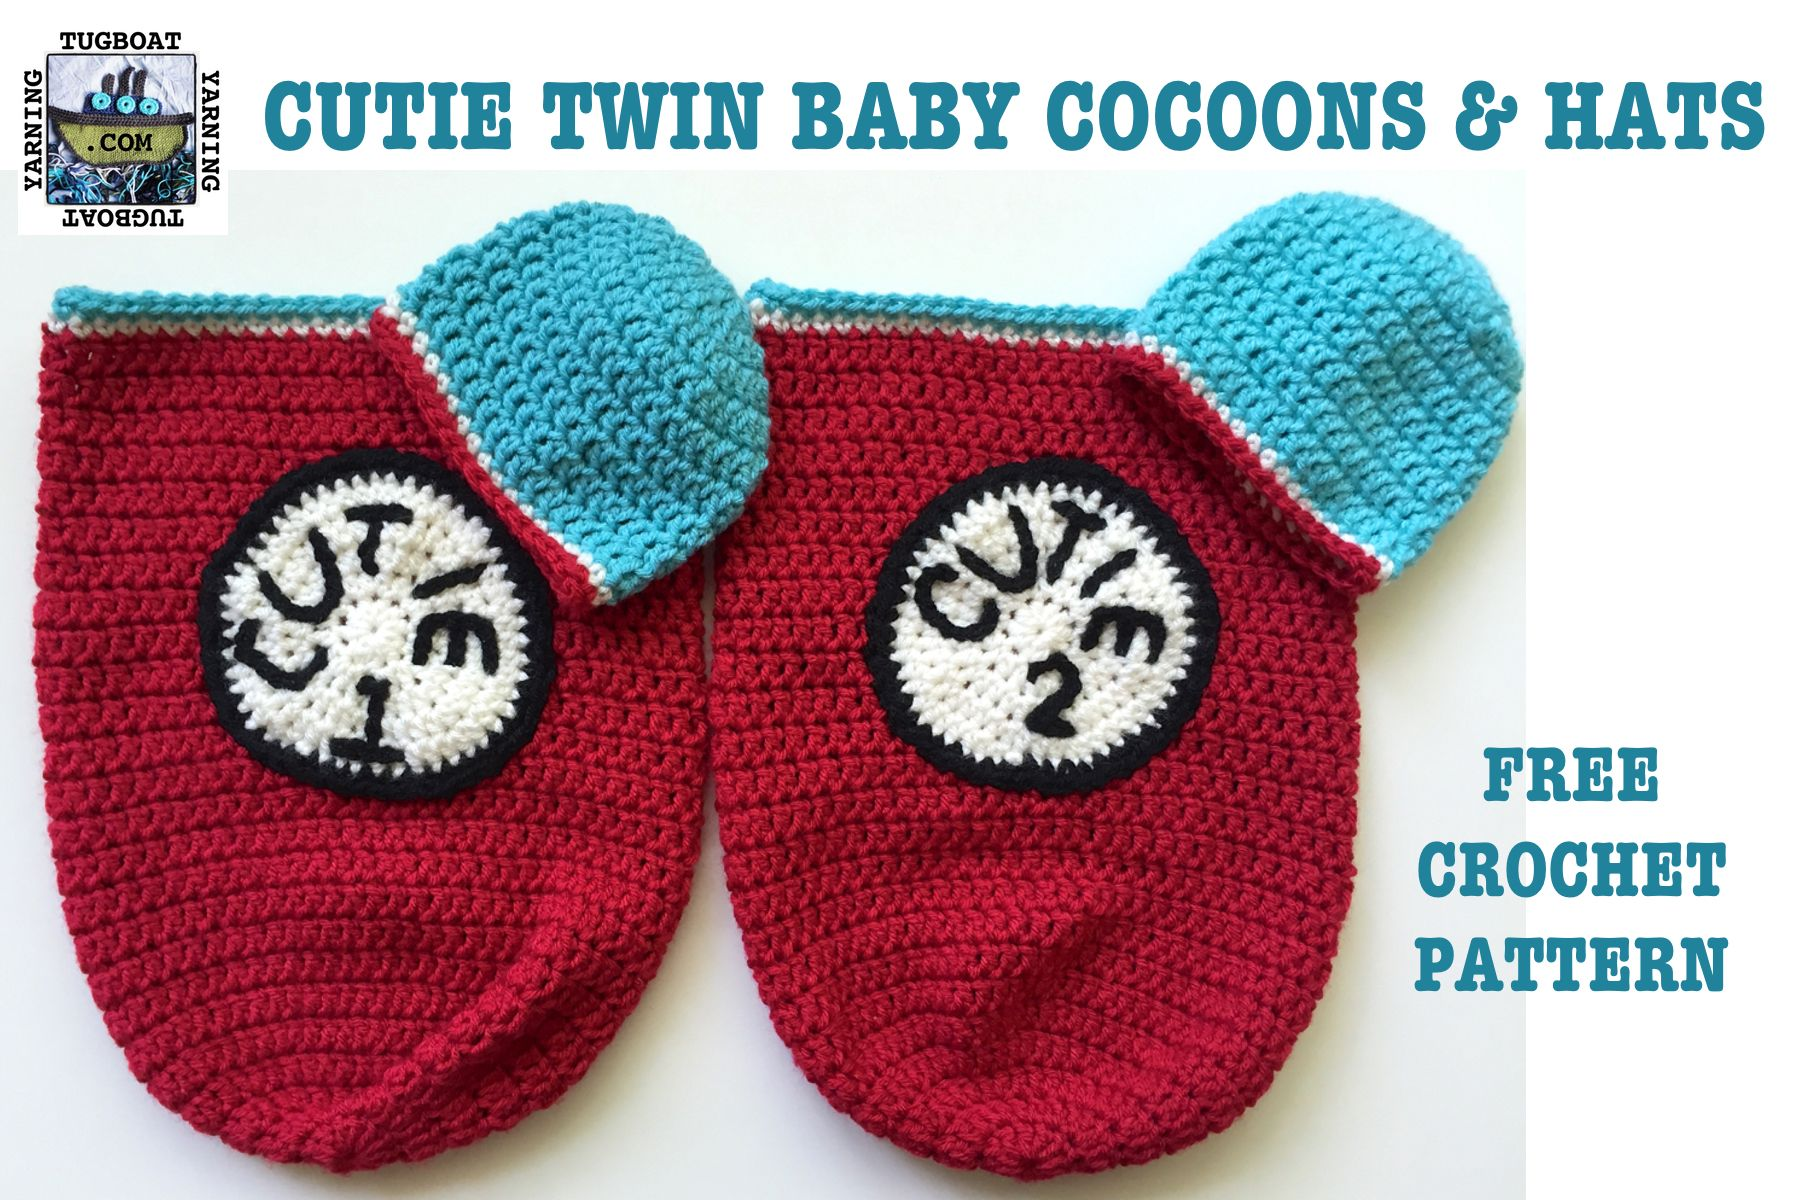 Twin Baby Cocoons & Hats FREE CROCHET PATTERN from Tugboat Yarning ...